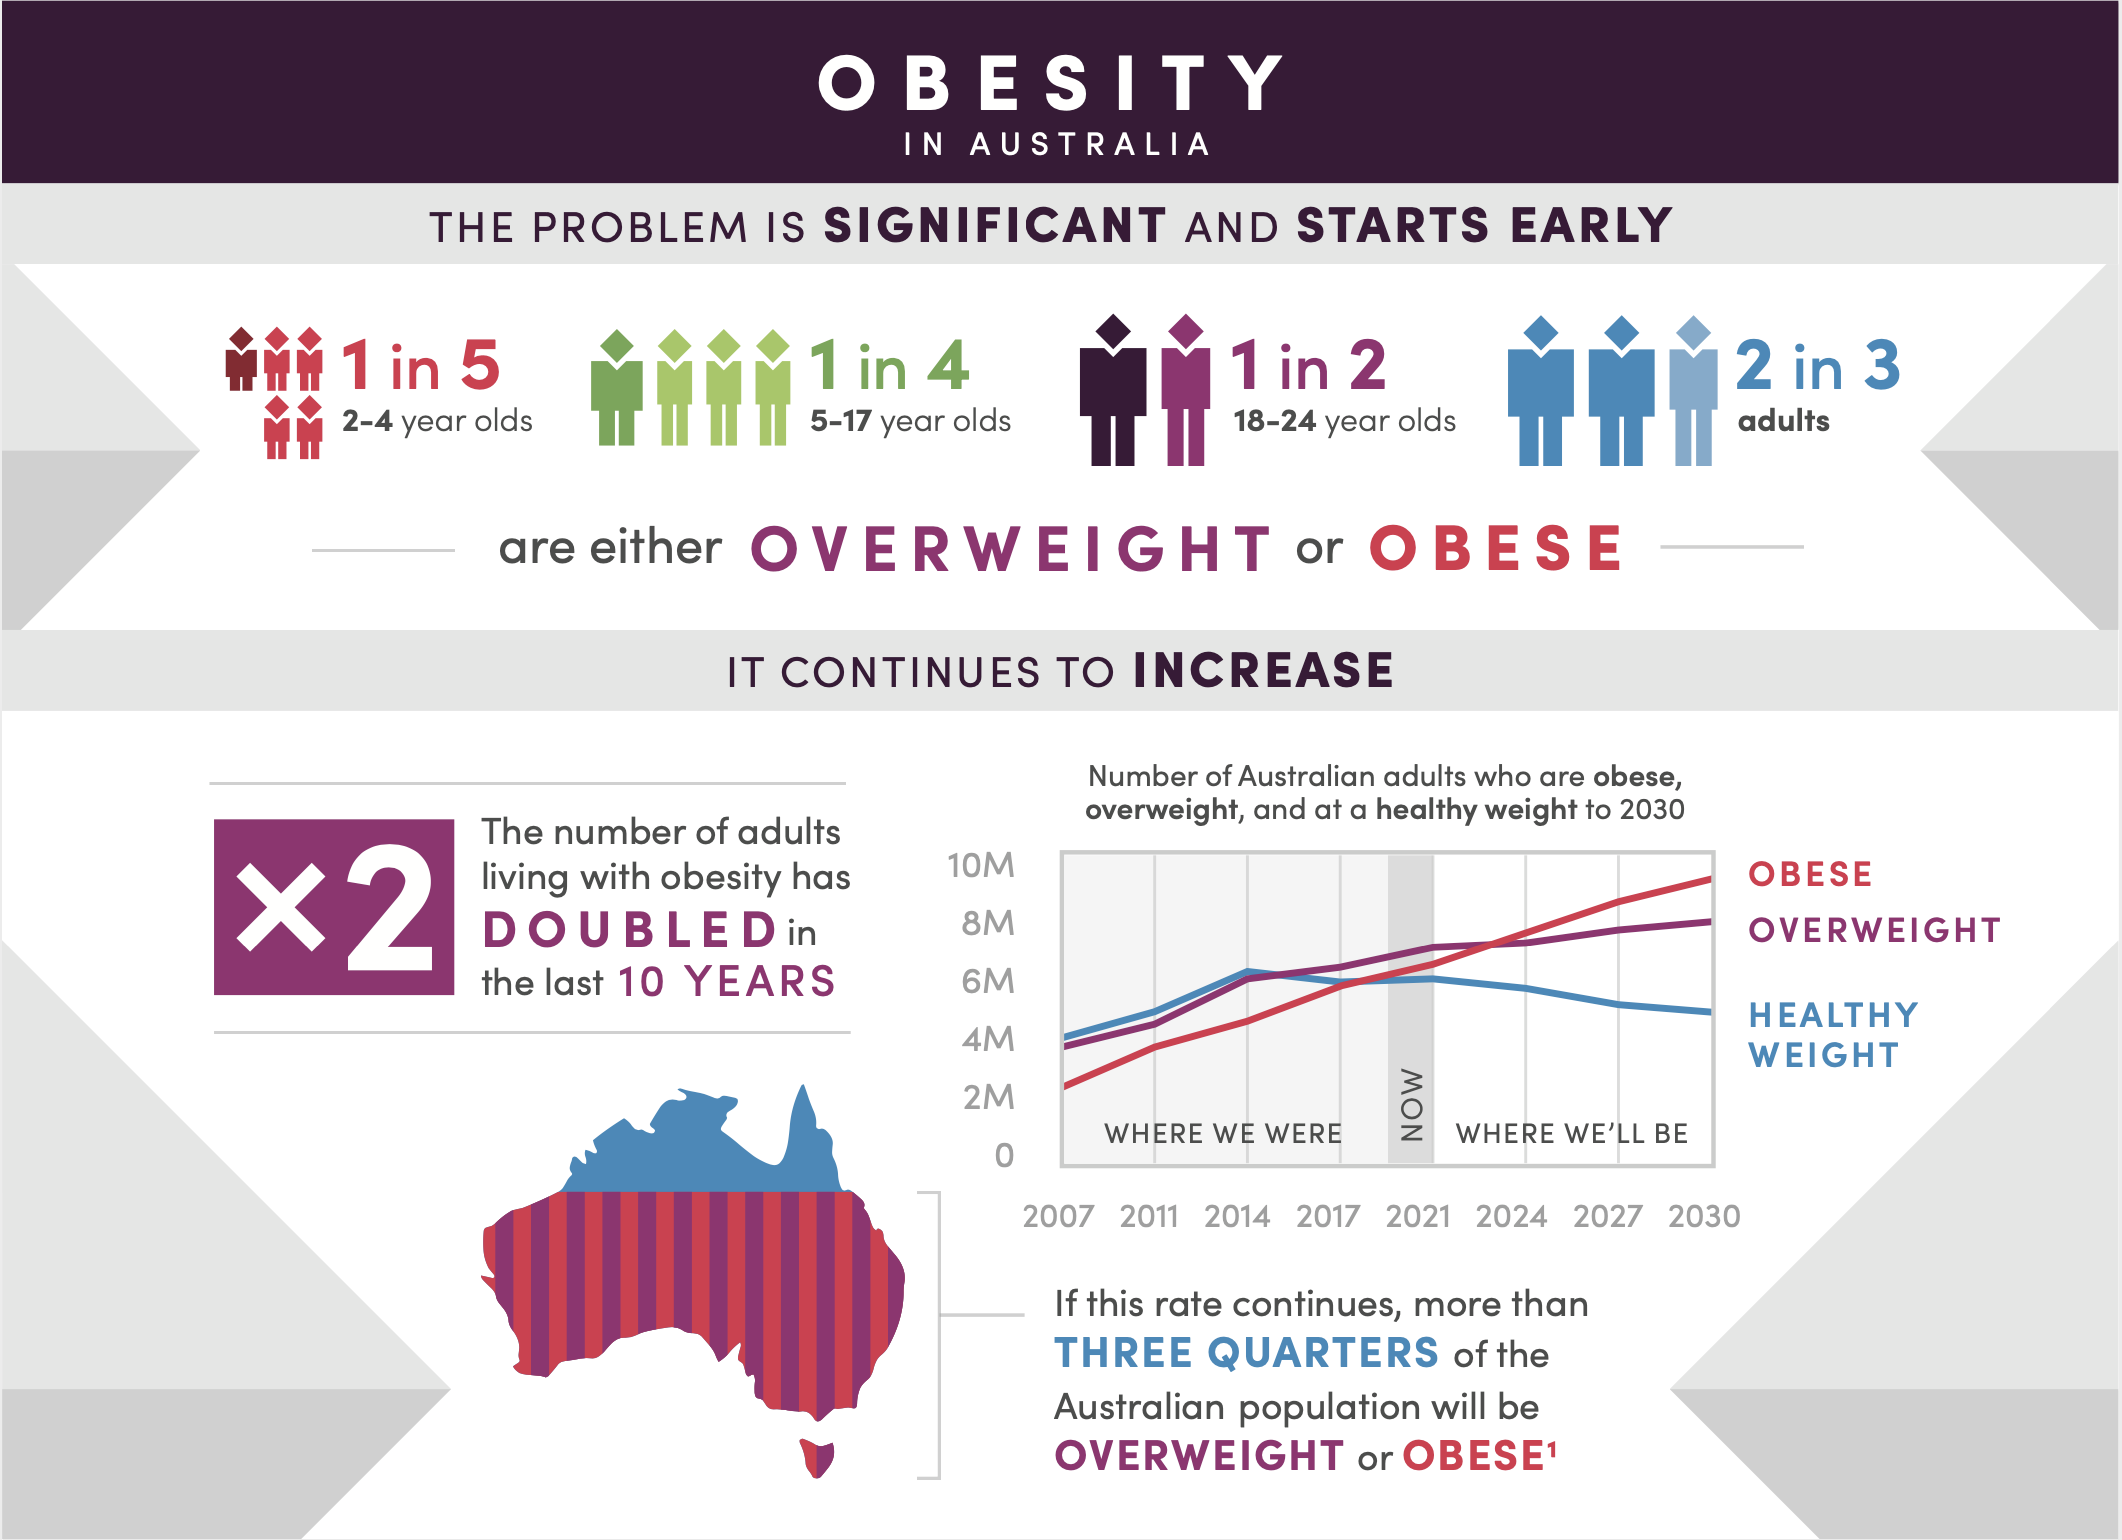 Infographic describing the problem of obesity in Australia